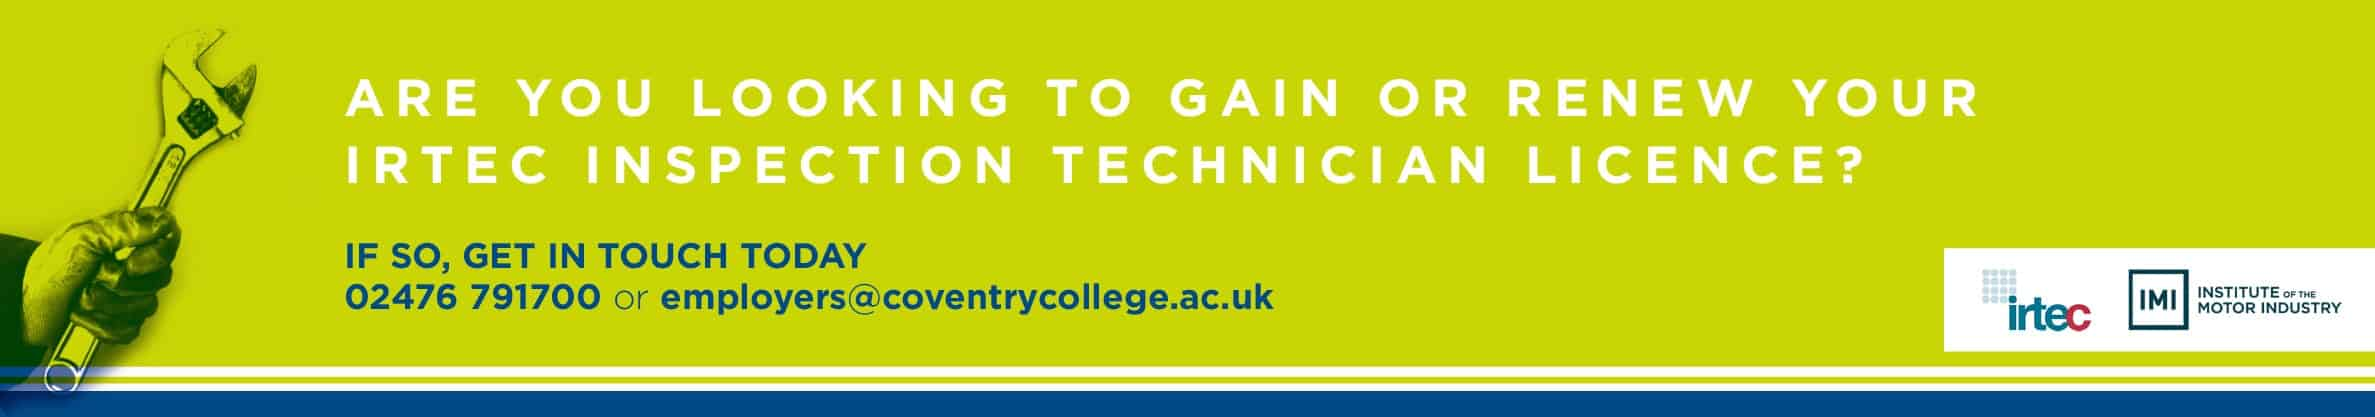 Are you looking to gain or renew your IRTE Inspection Technician Licence?